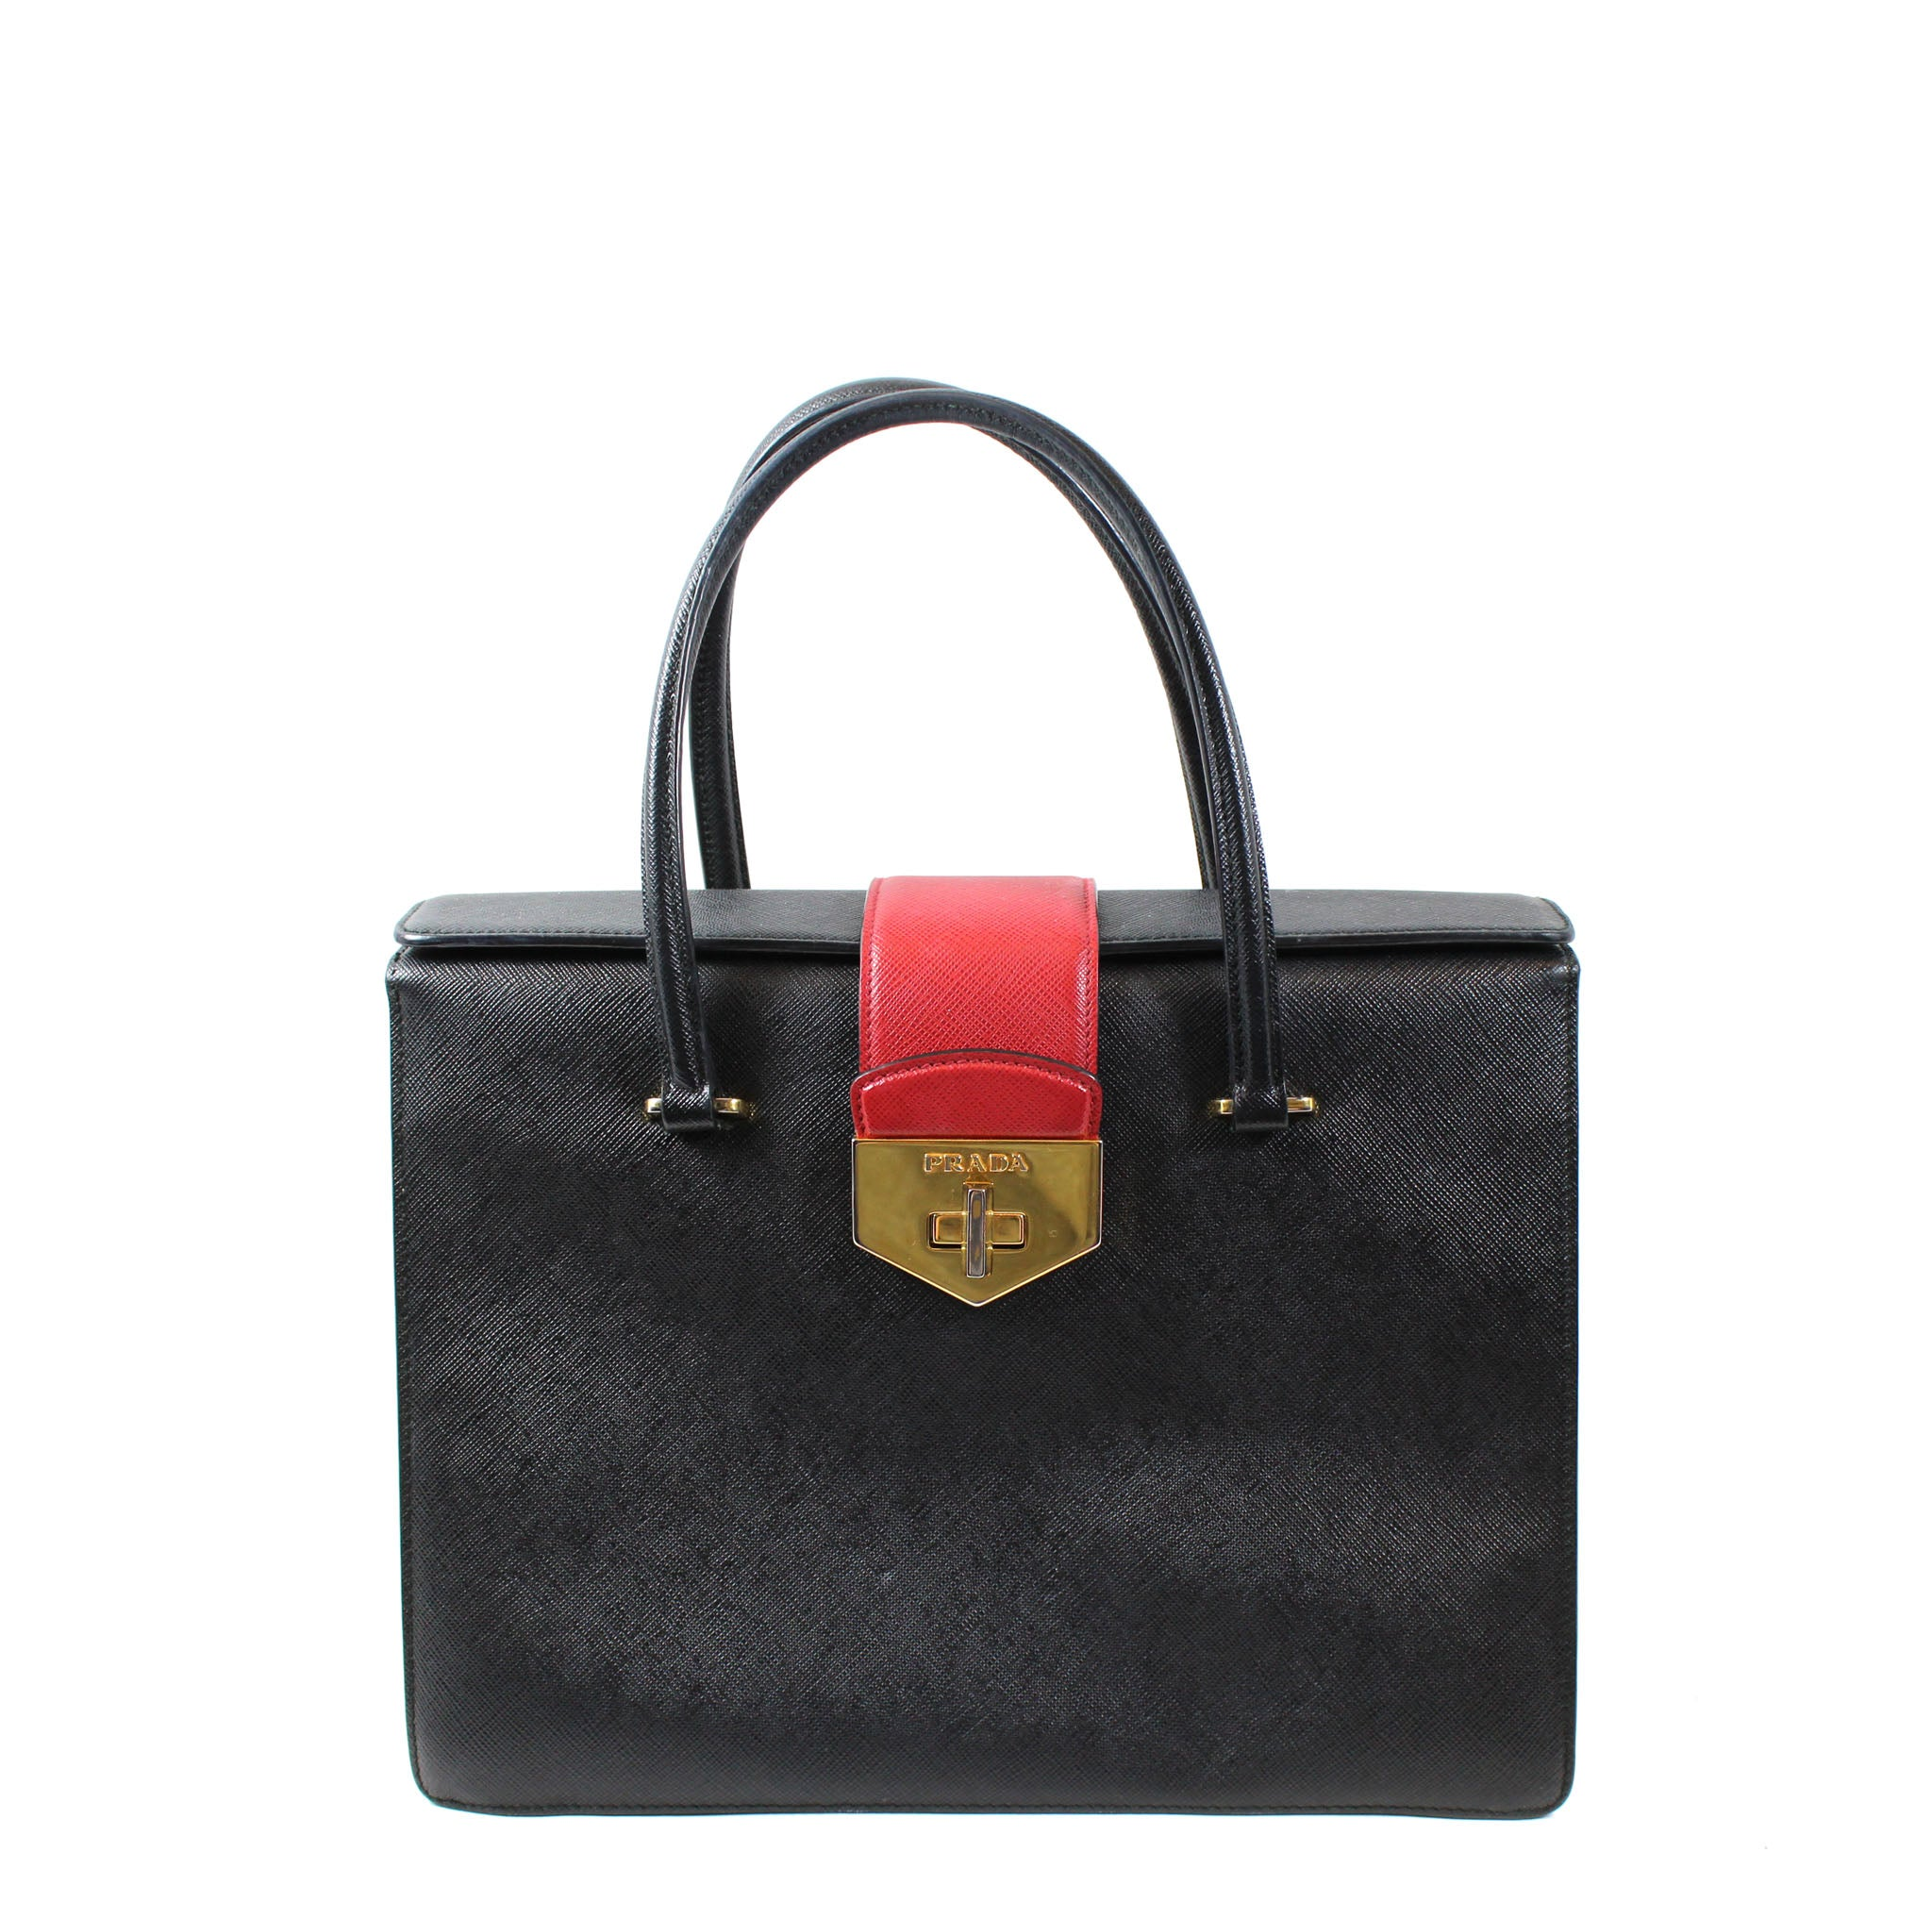 Prada Black White Red Saffiano Leather Gusseted Handbag – Encore Resale.com 374507468a4c